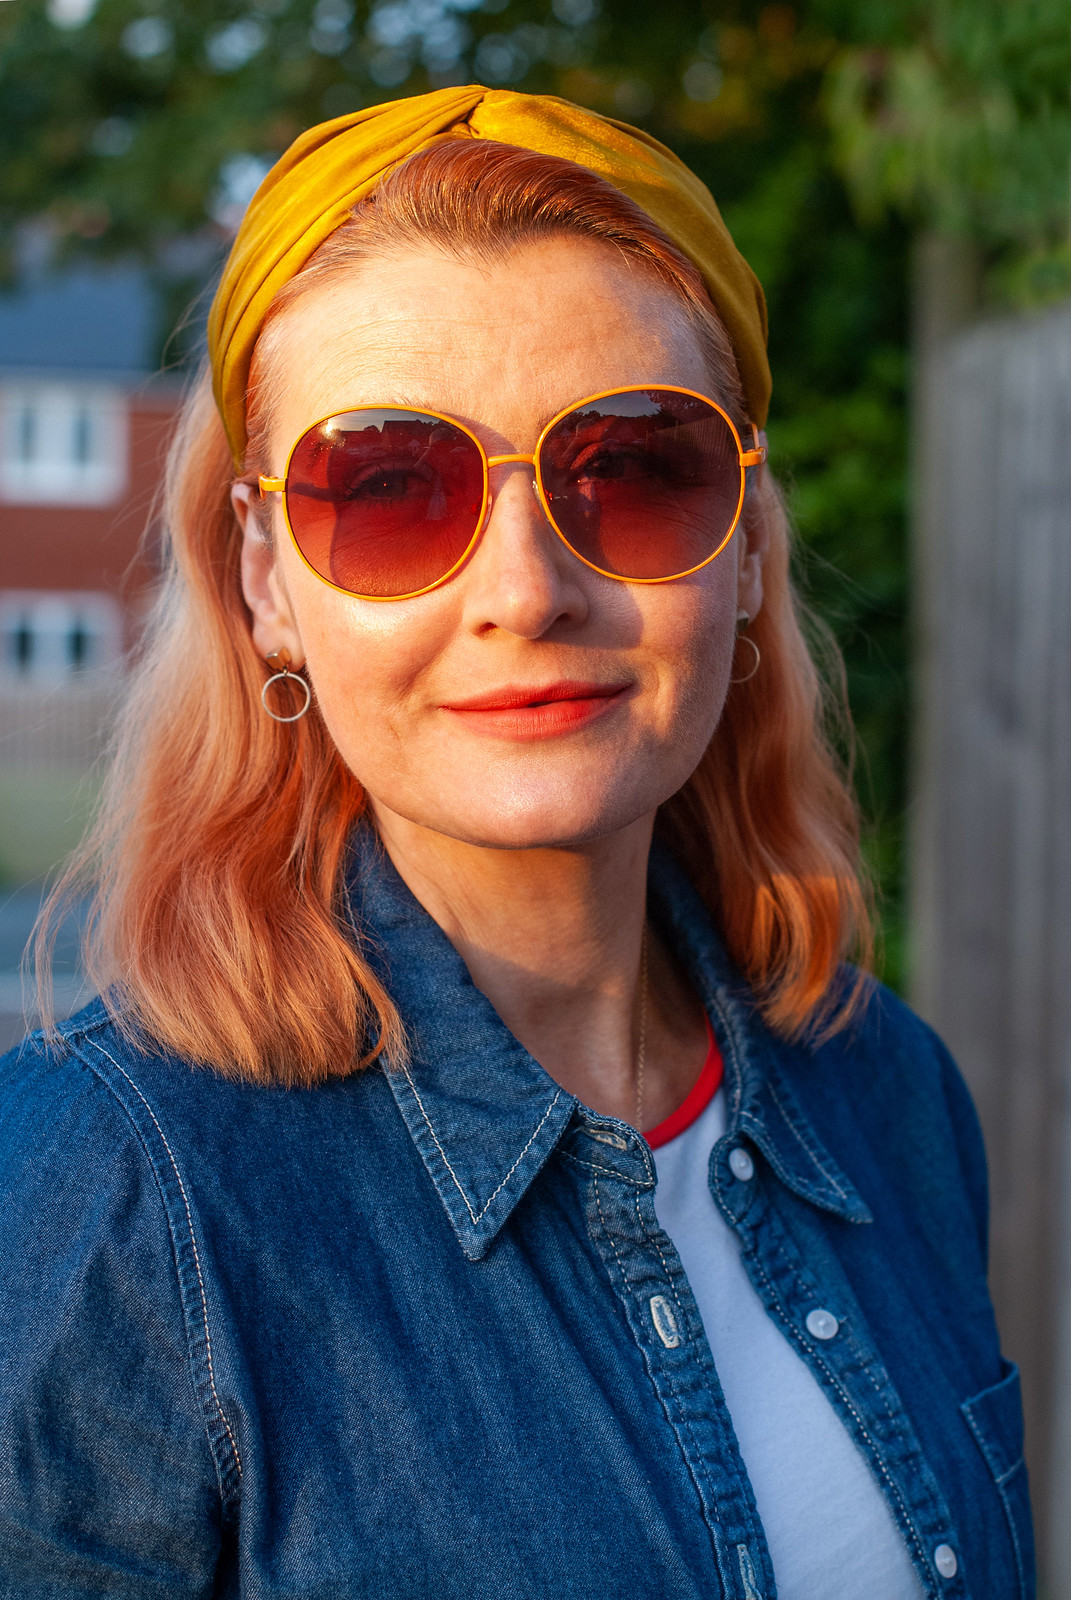 Adding Rainbow Brights to Good Old Double Denim | Not Dressed As Lamb, over 40 style blogger